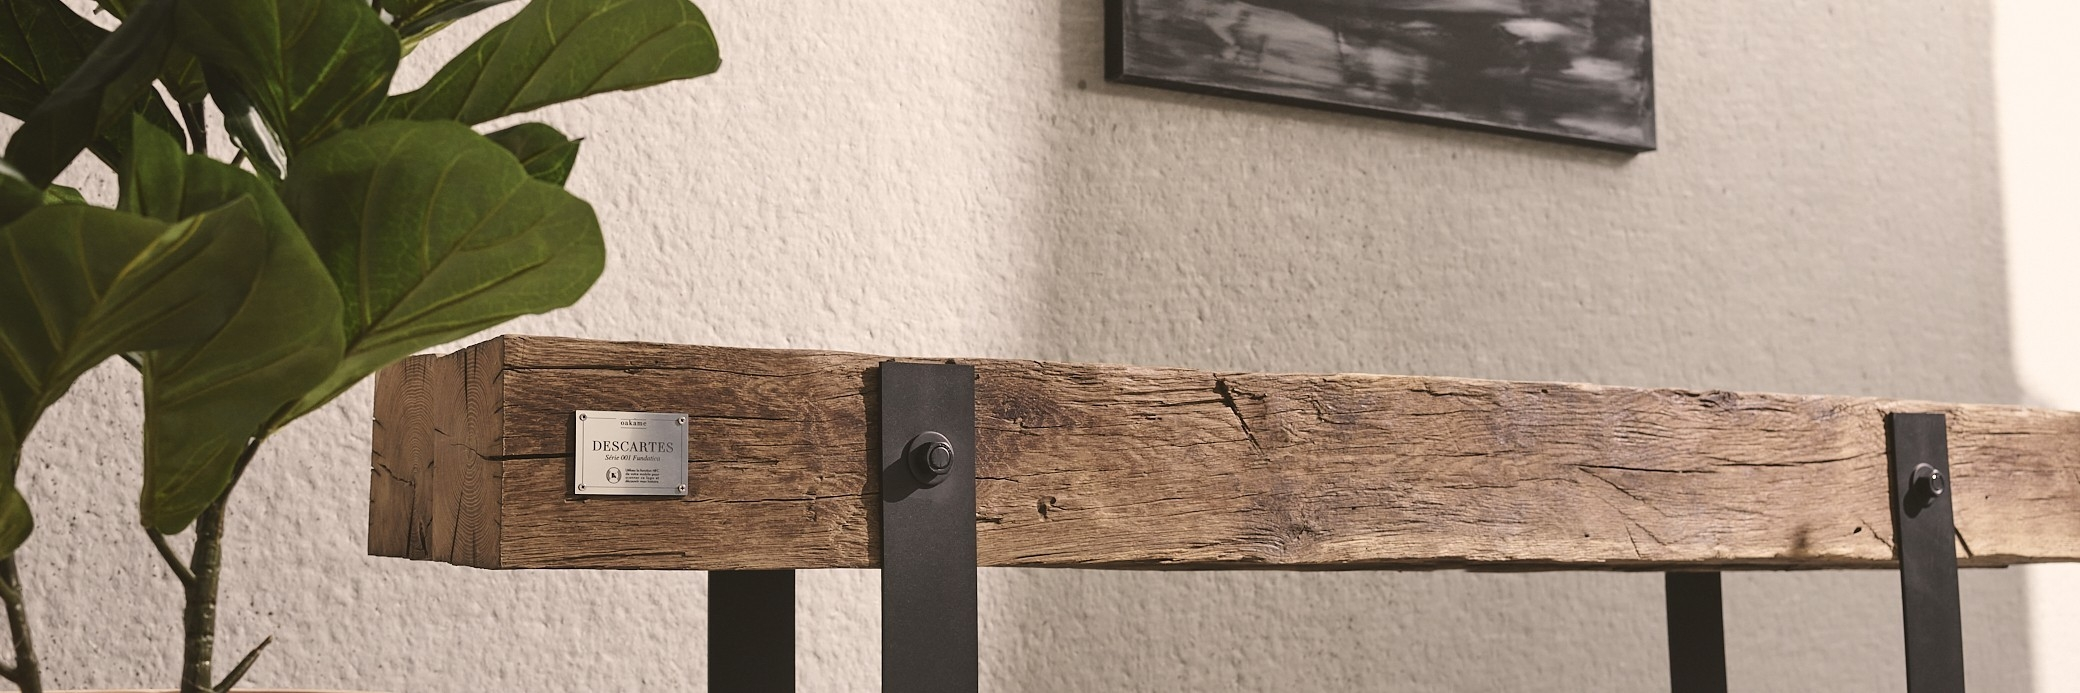 Rustic Indoor Wood Bench | Sustainable - Made in France | Oakâme